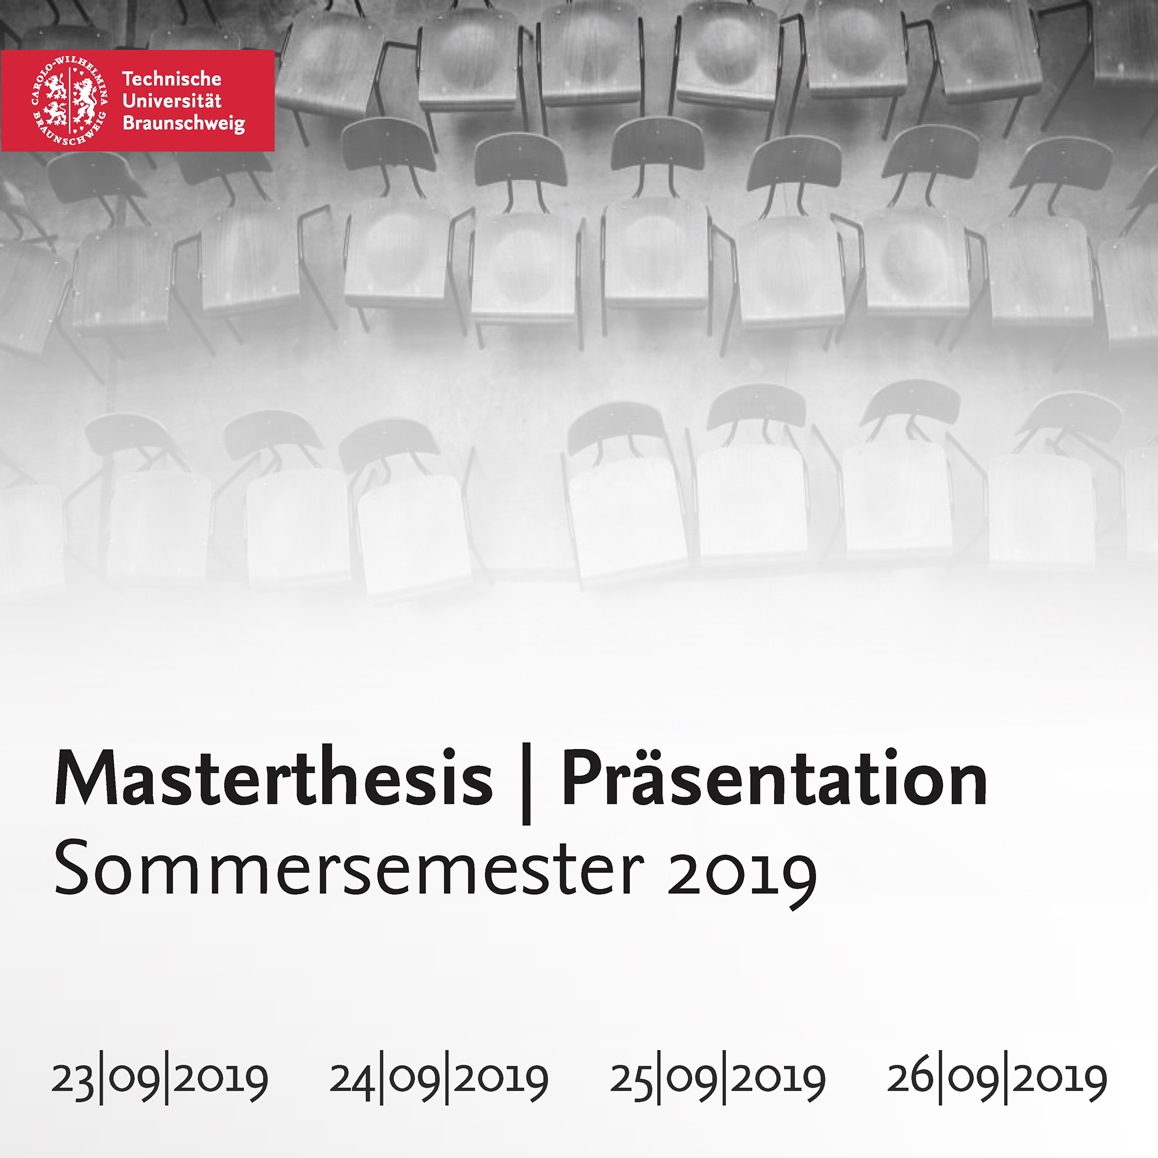 Masterthesis Präsentationen